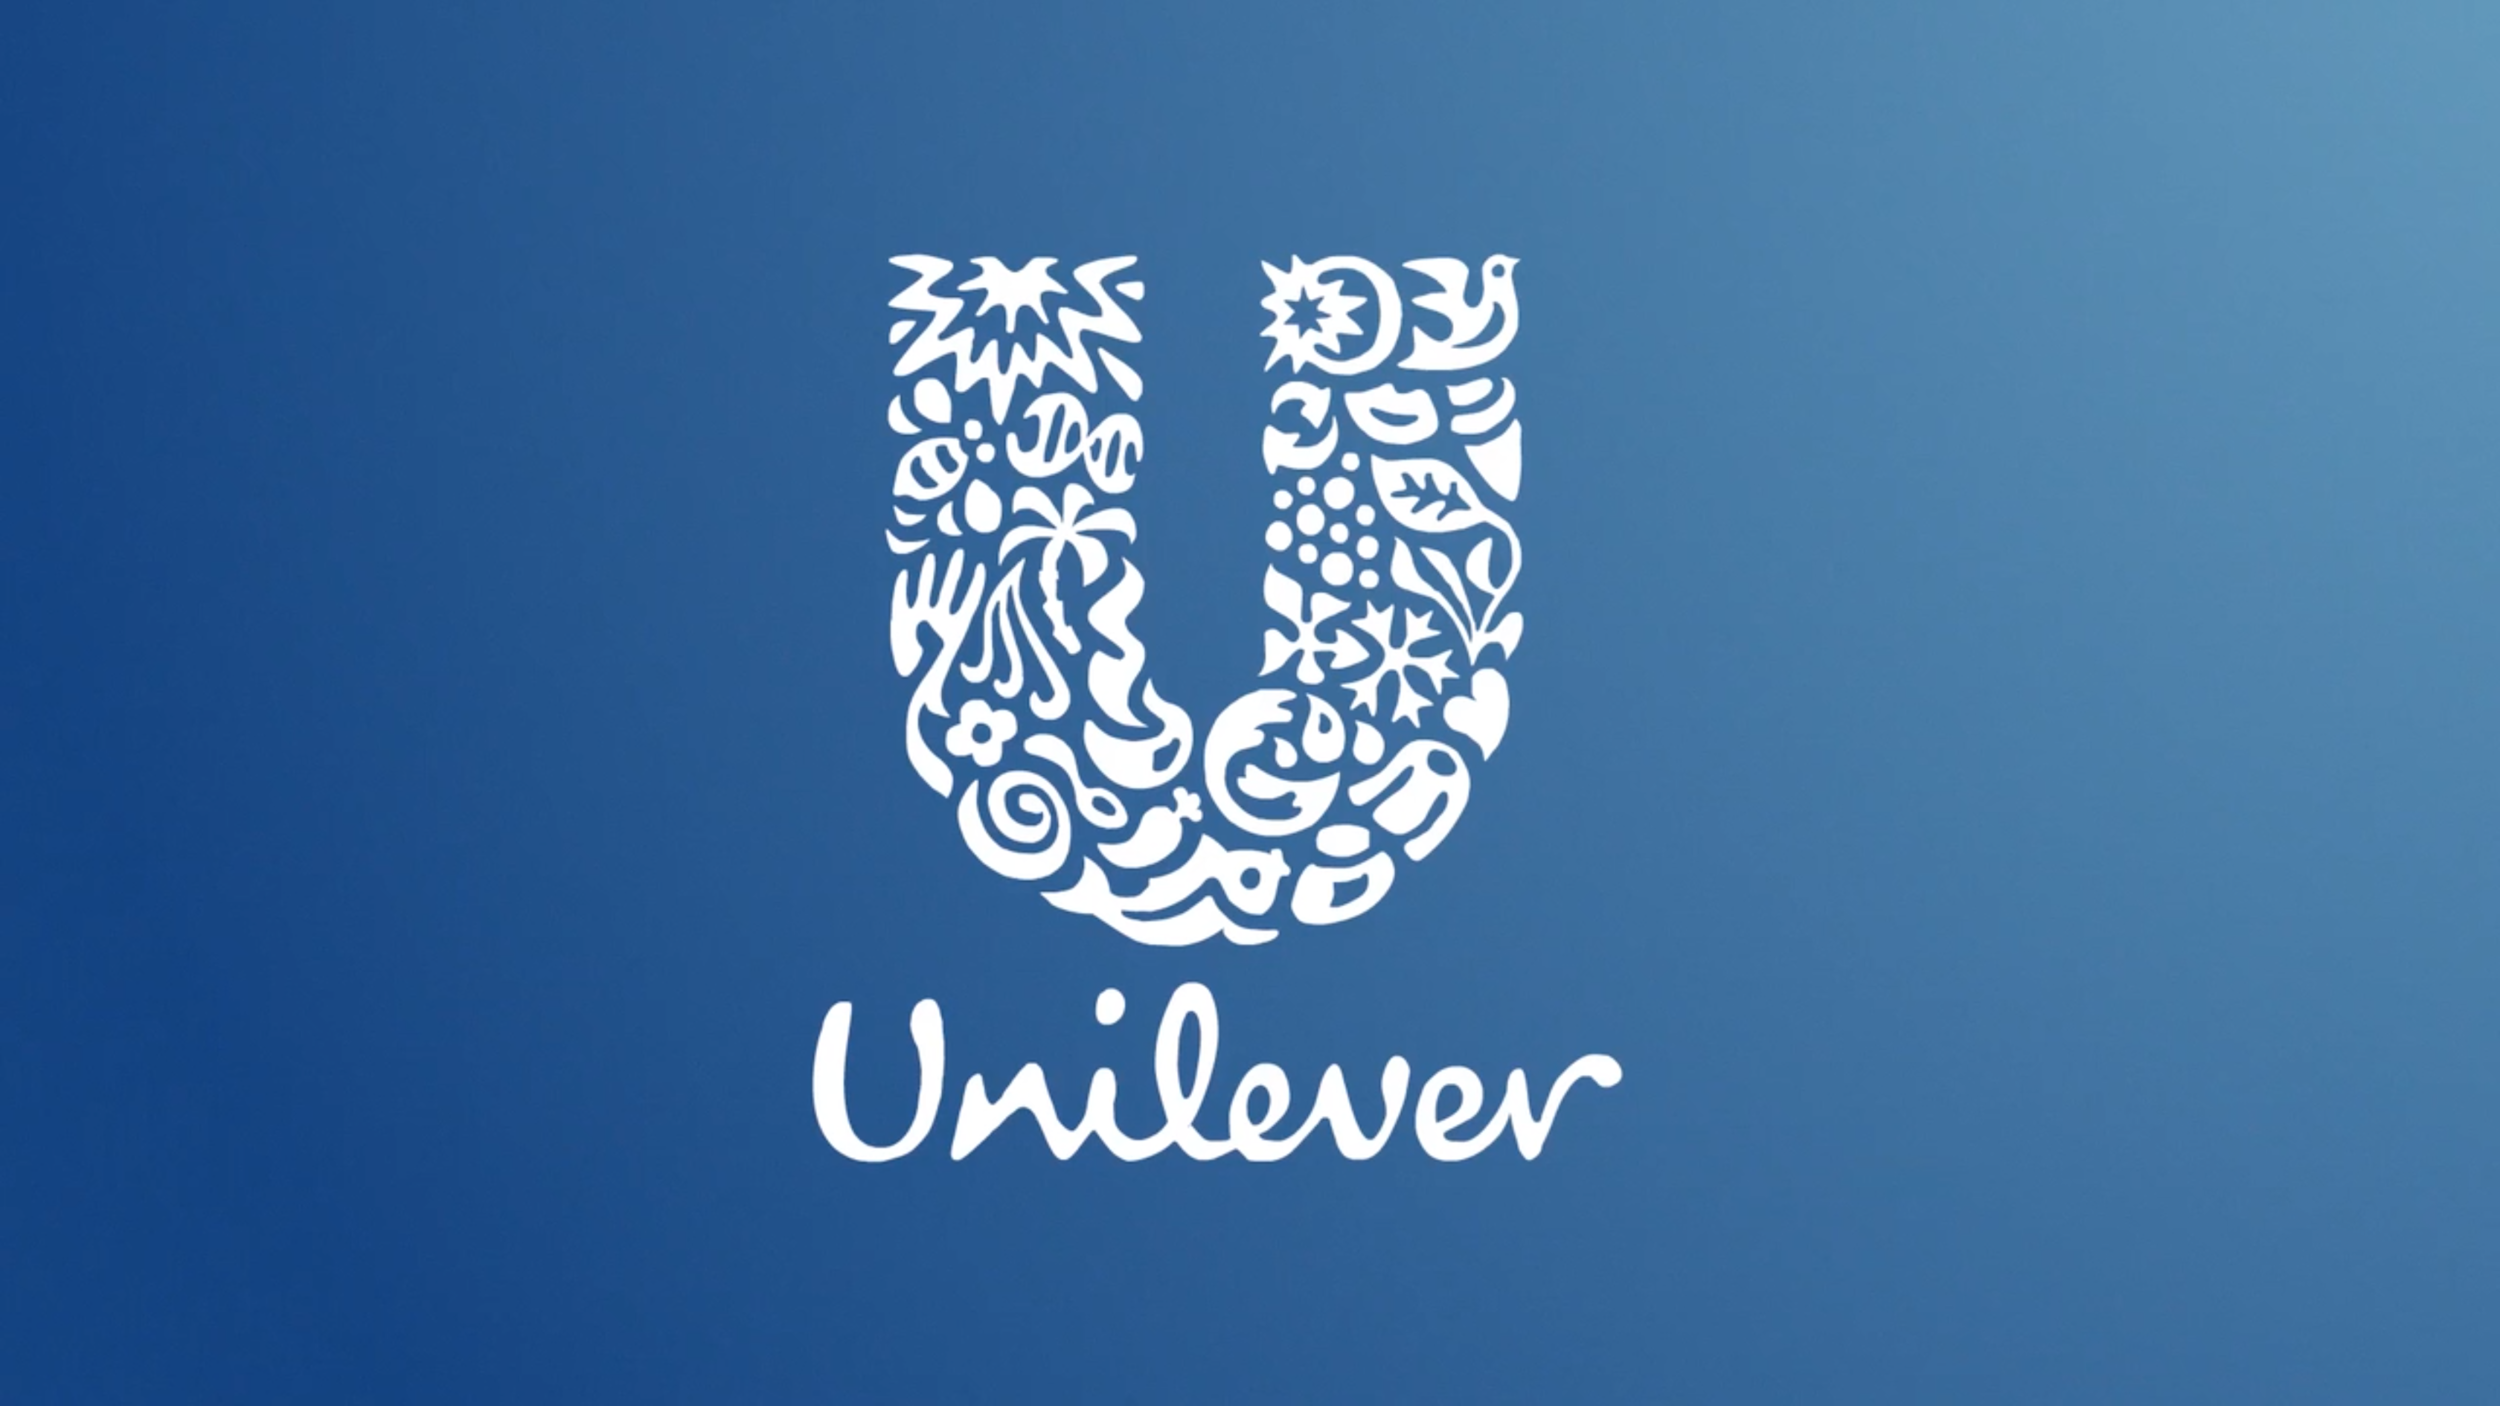 Five Commericals for Unilever Project Sunlight